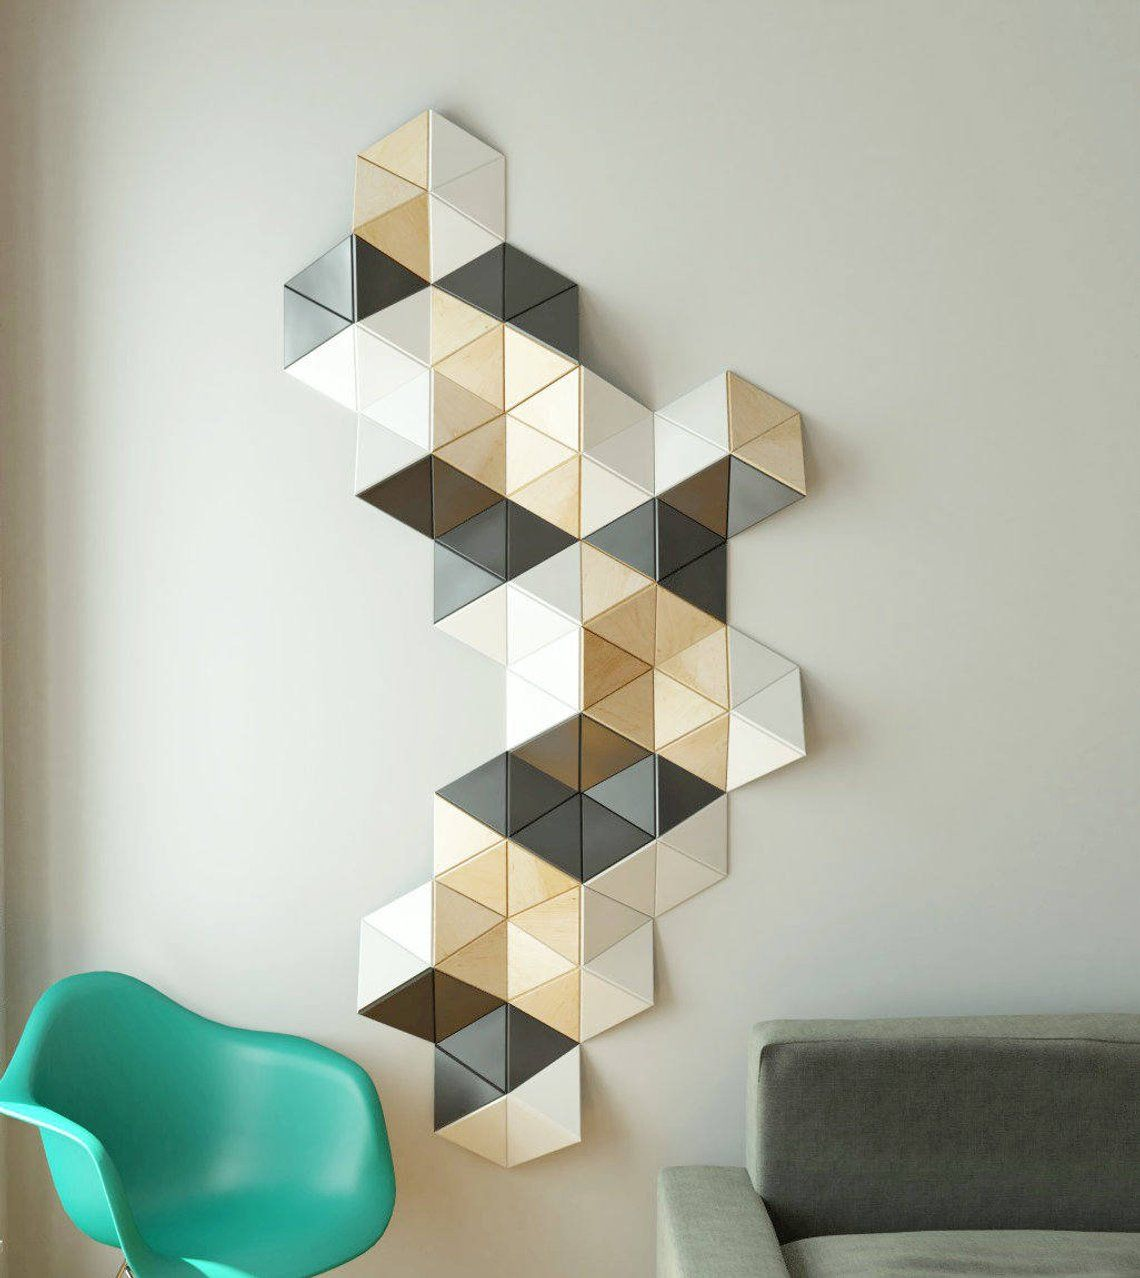 Image 0 Art In 2019 Wooden Wall Decor